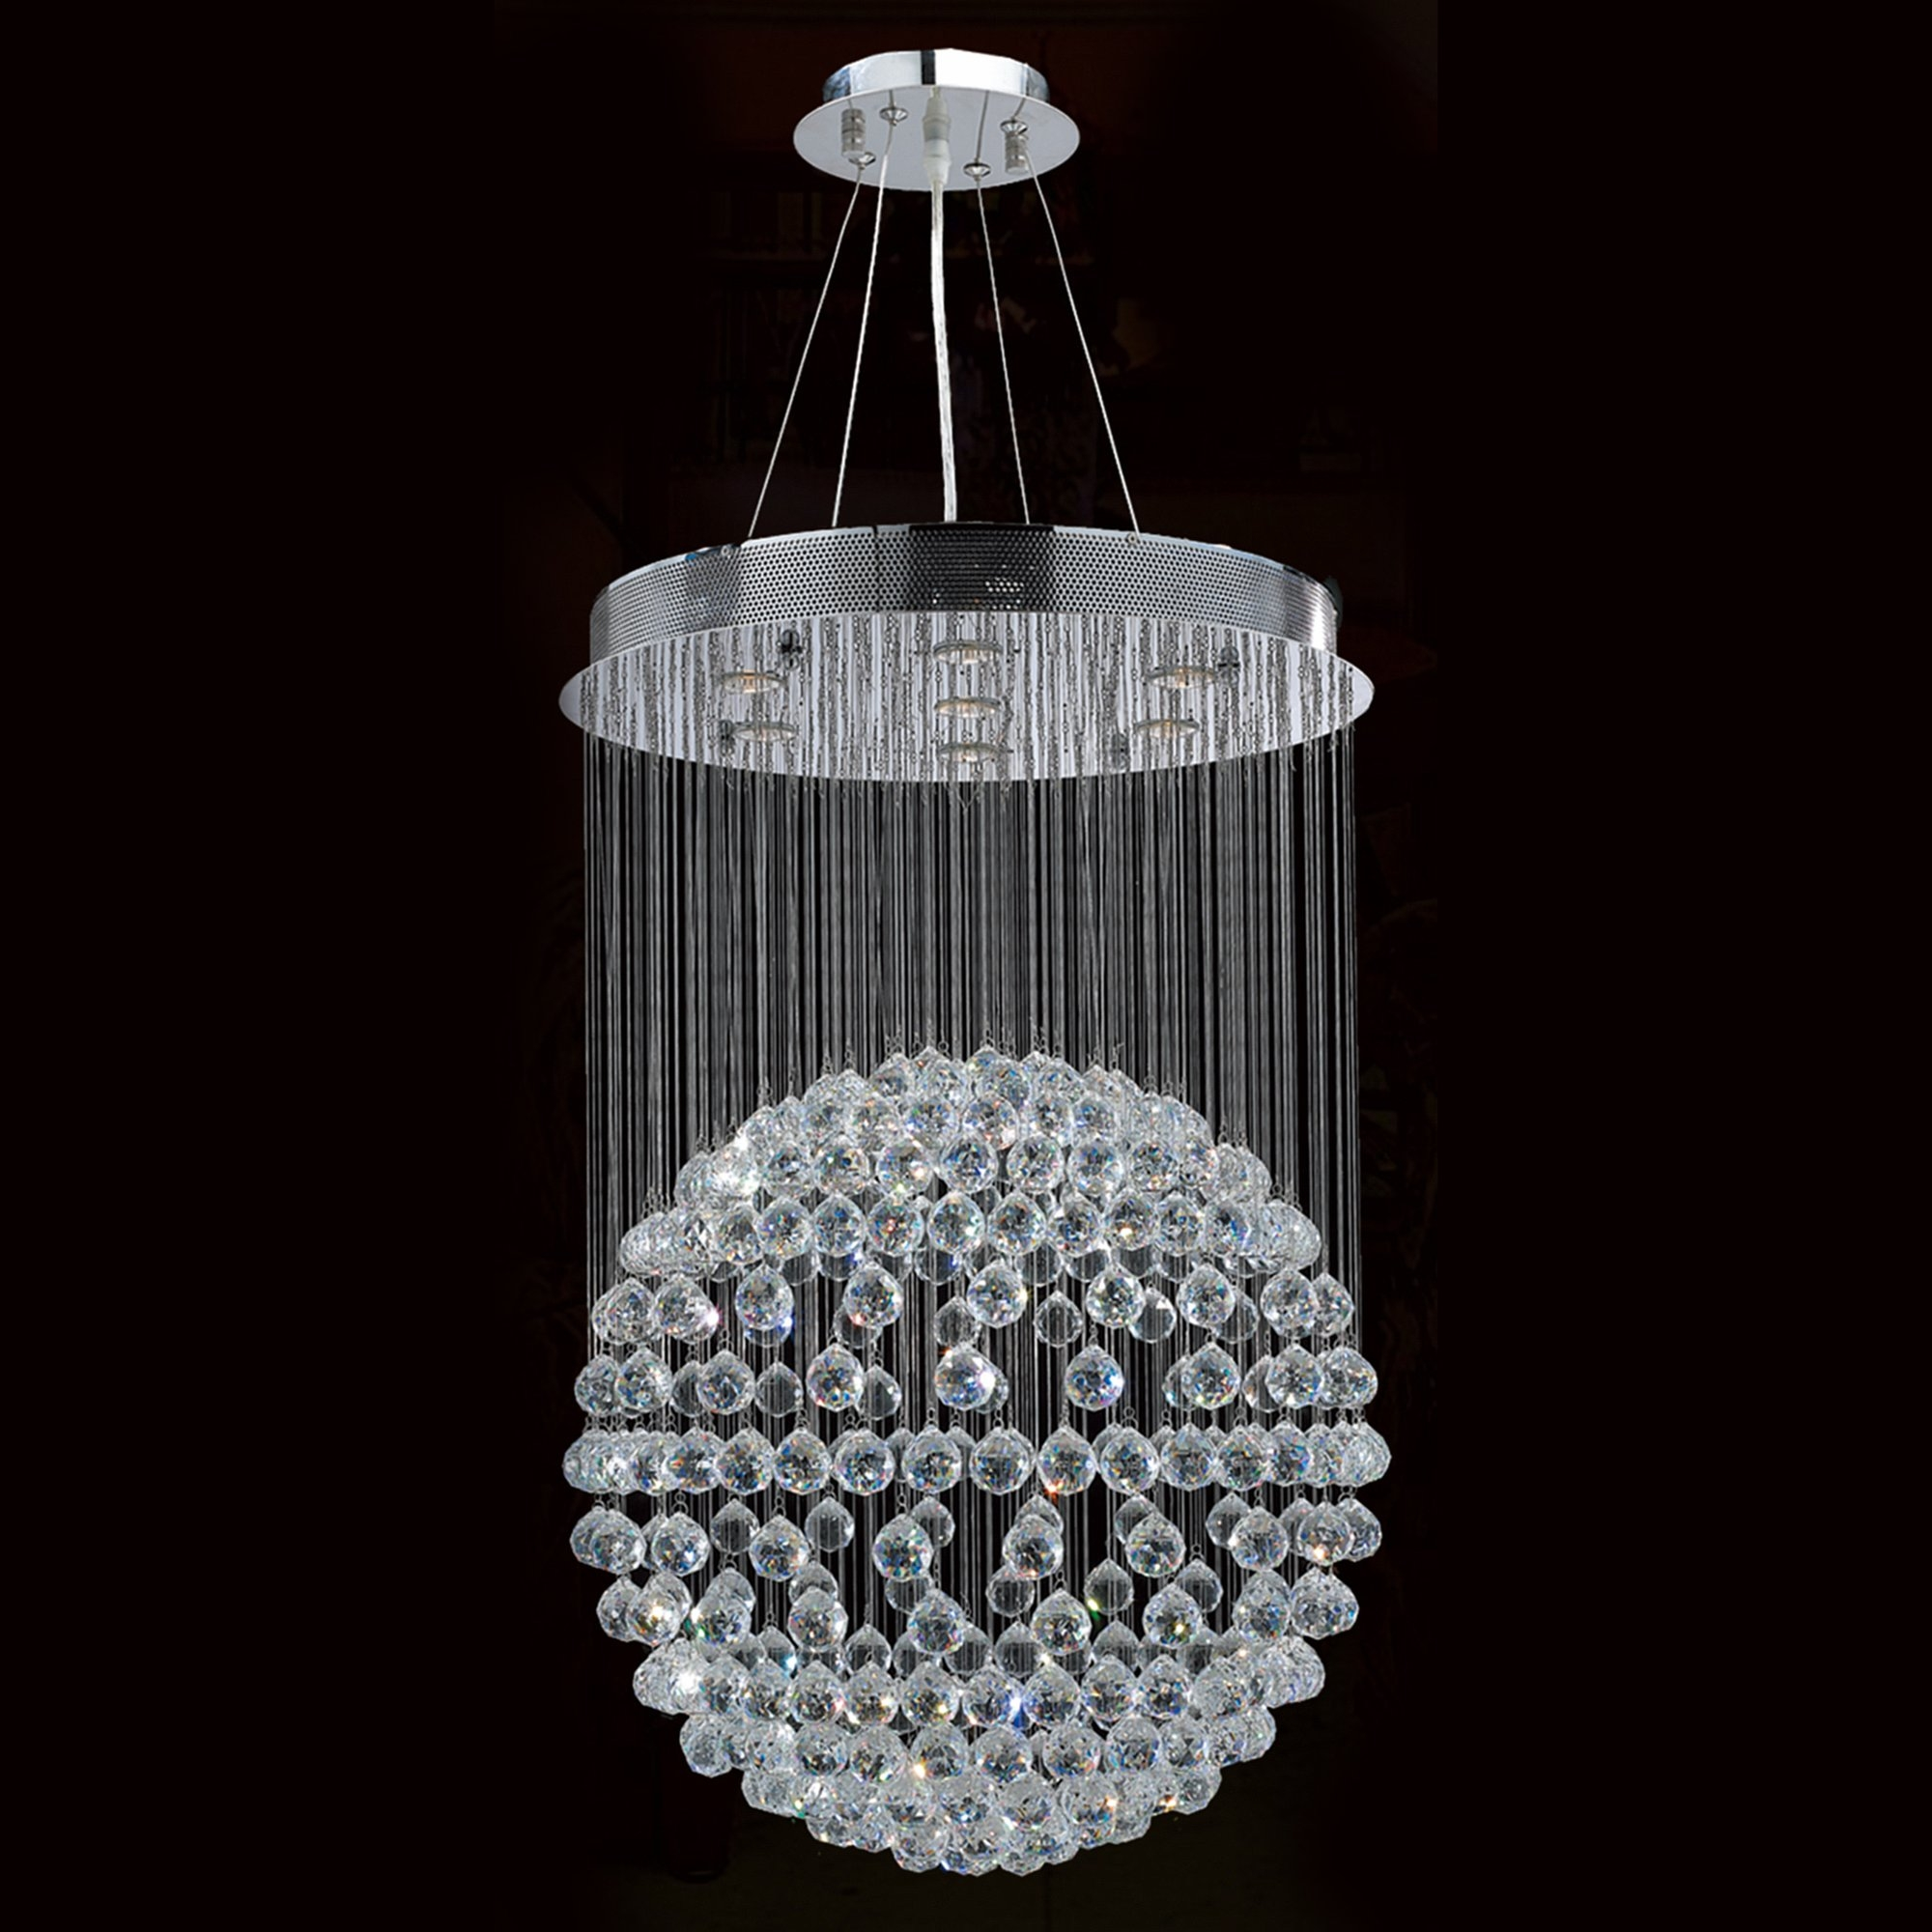 Worldwide Lighting Saturn 7 Light Crystal Chandelier Reviews With Waterfall Crystal Chandelier (Image 15 of 15)